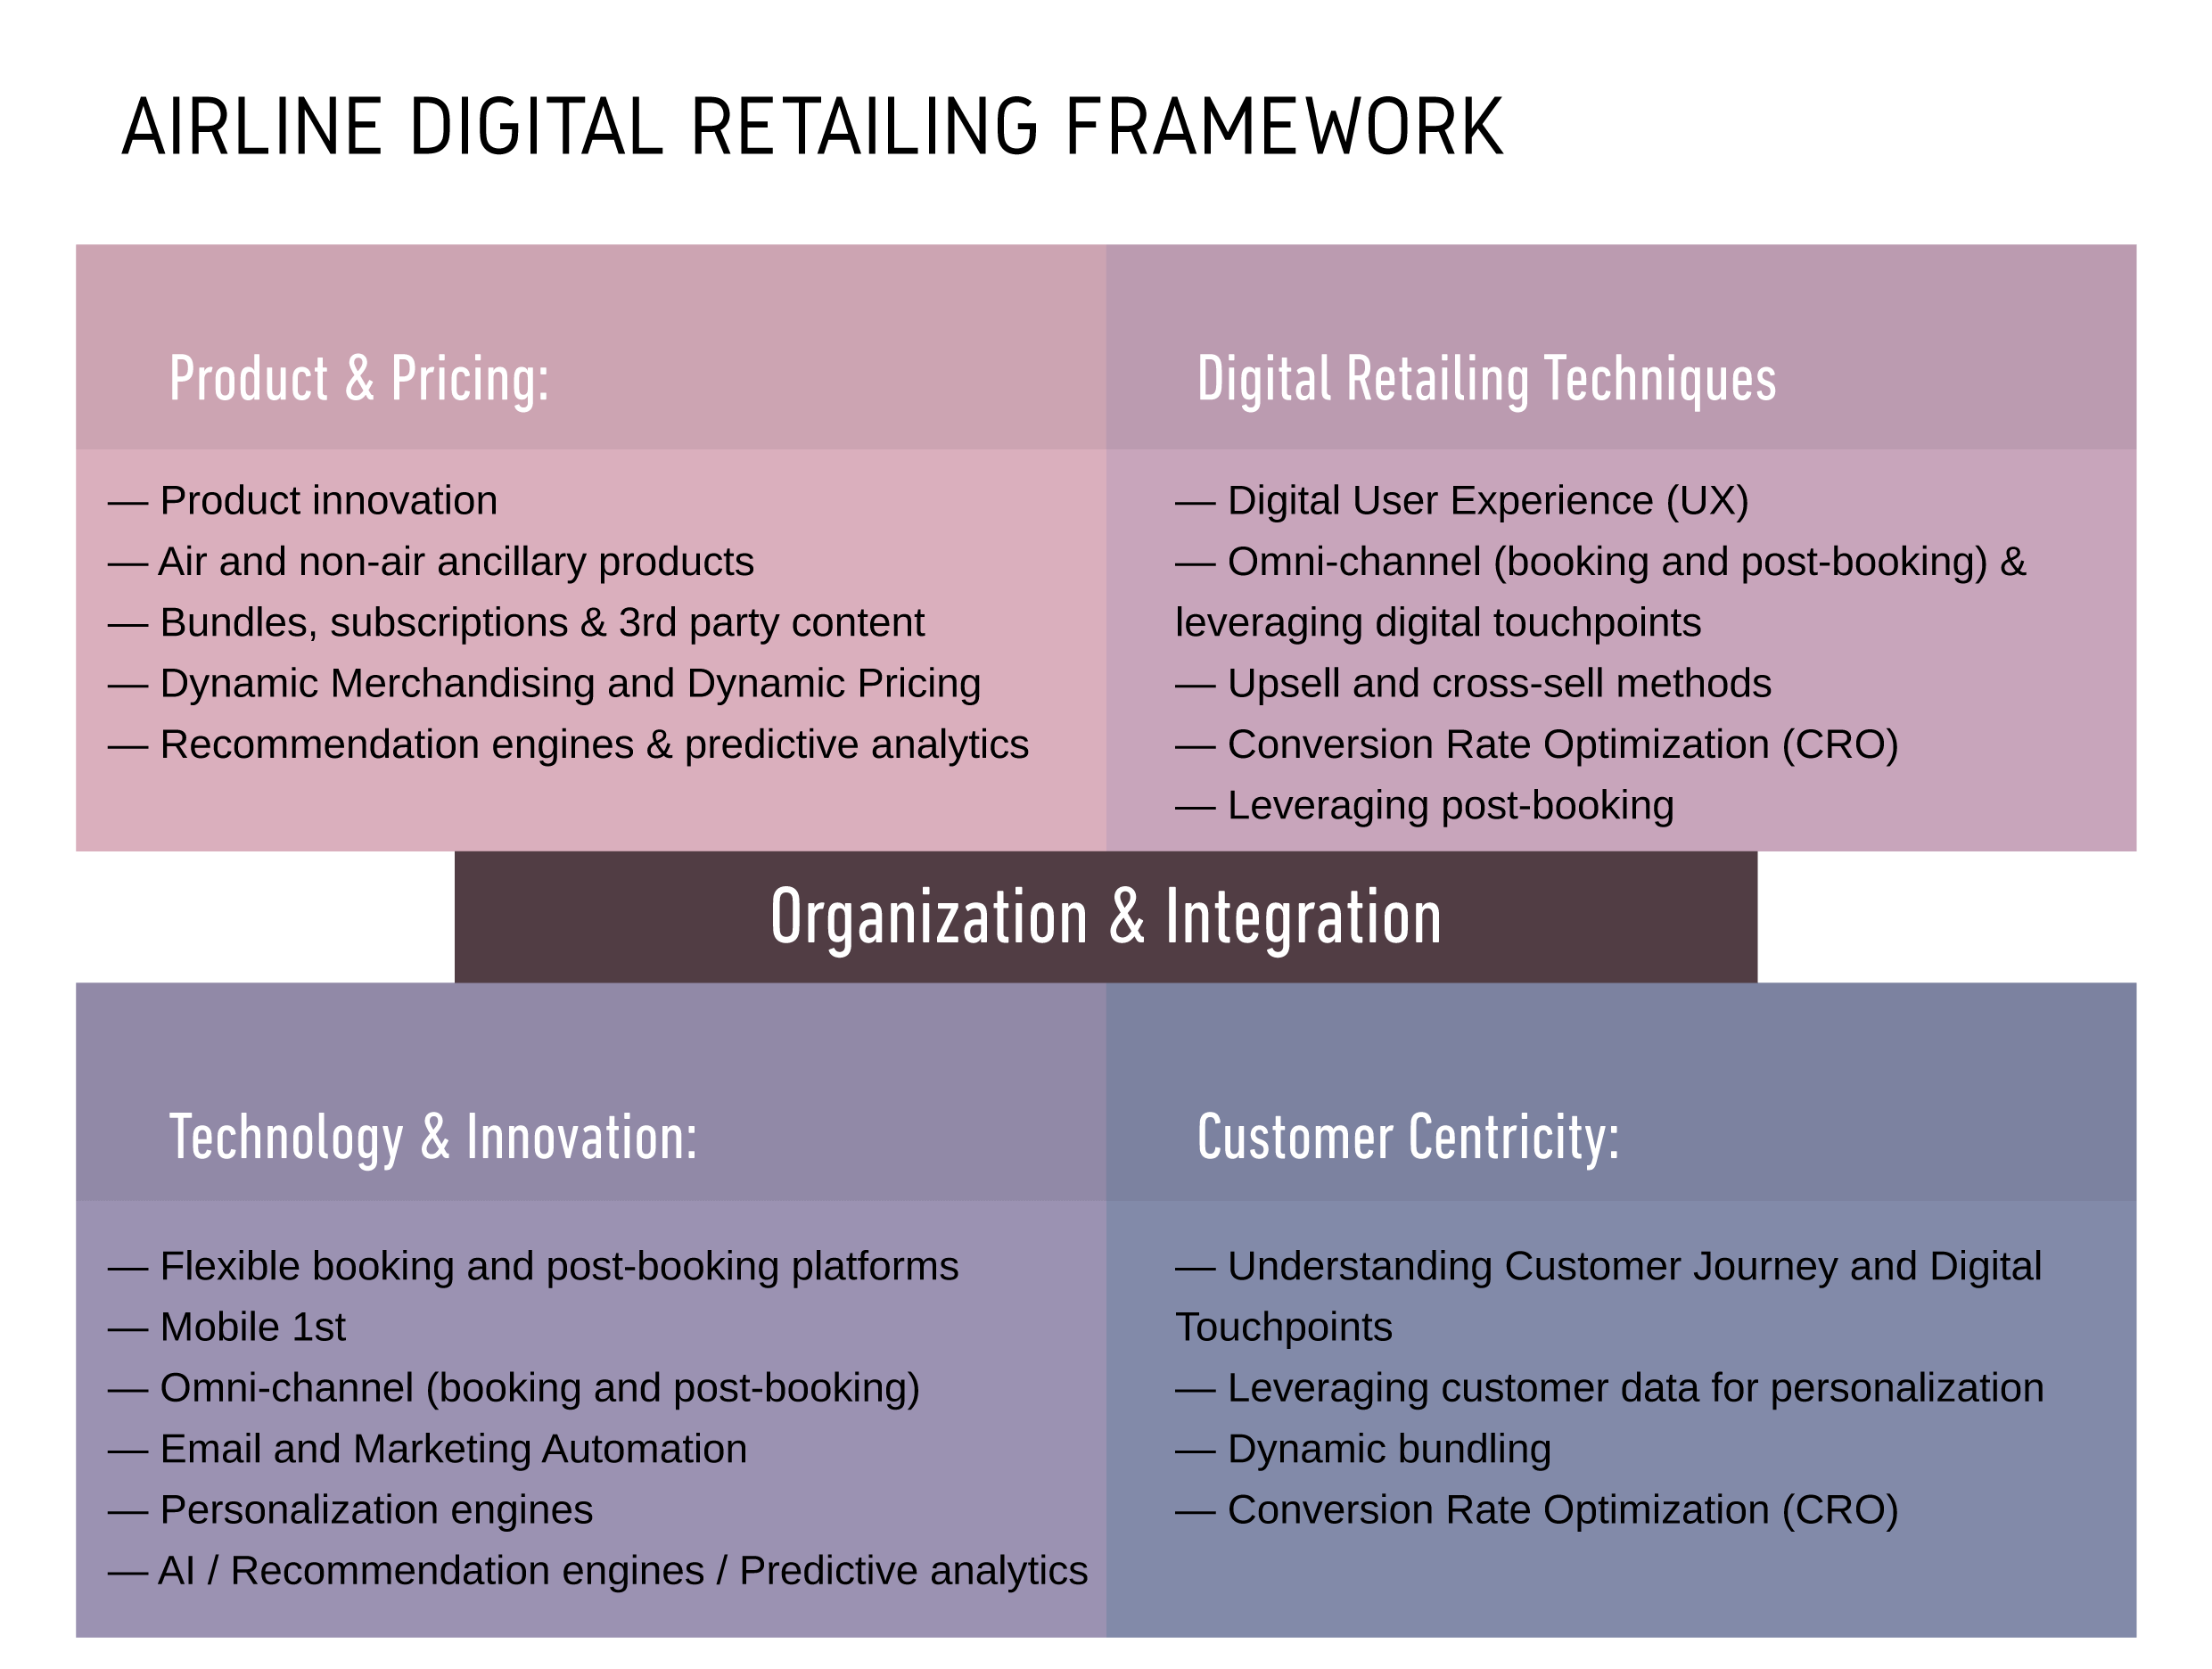 2019 Airline Digital Retailing Framework helps airlines evaluate and plan their ancillary revenue and retailing